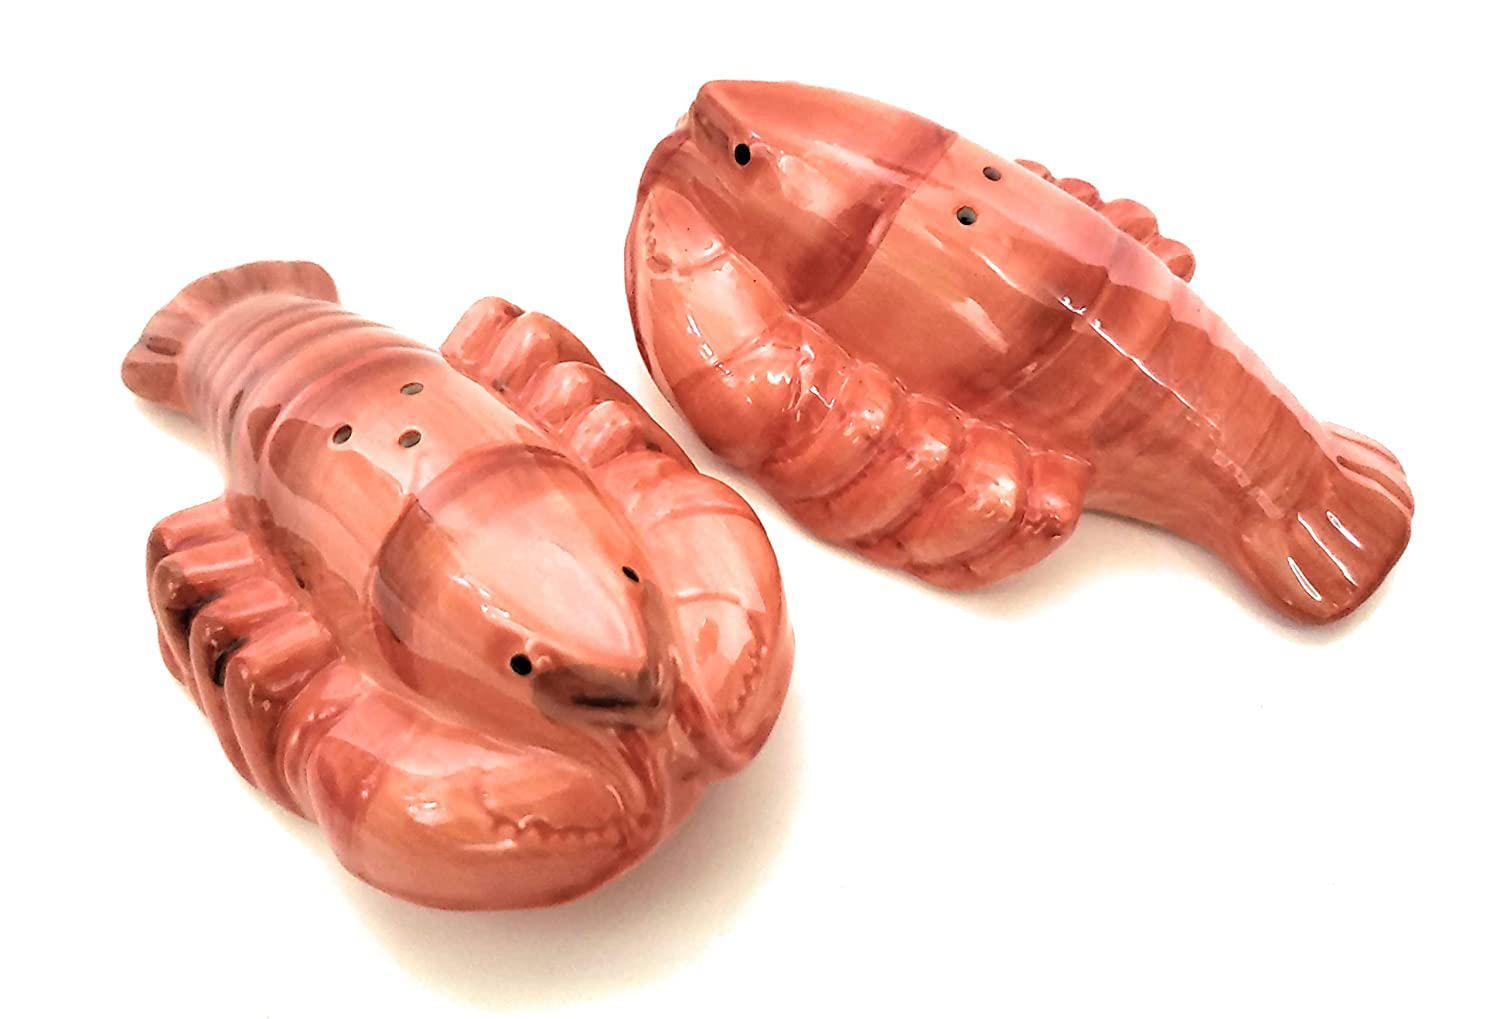 Red Lobster Hand Painted Ceramic Salt and Pepper Set